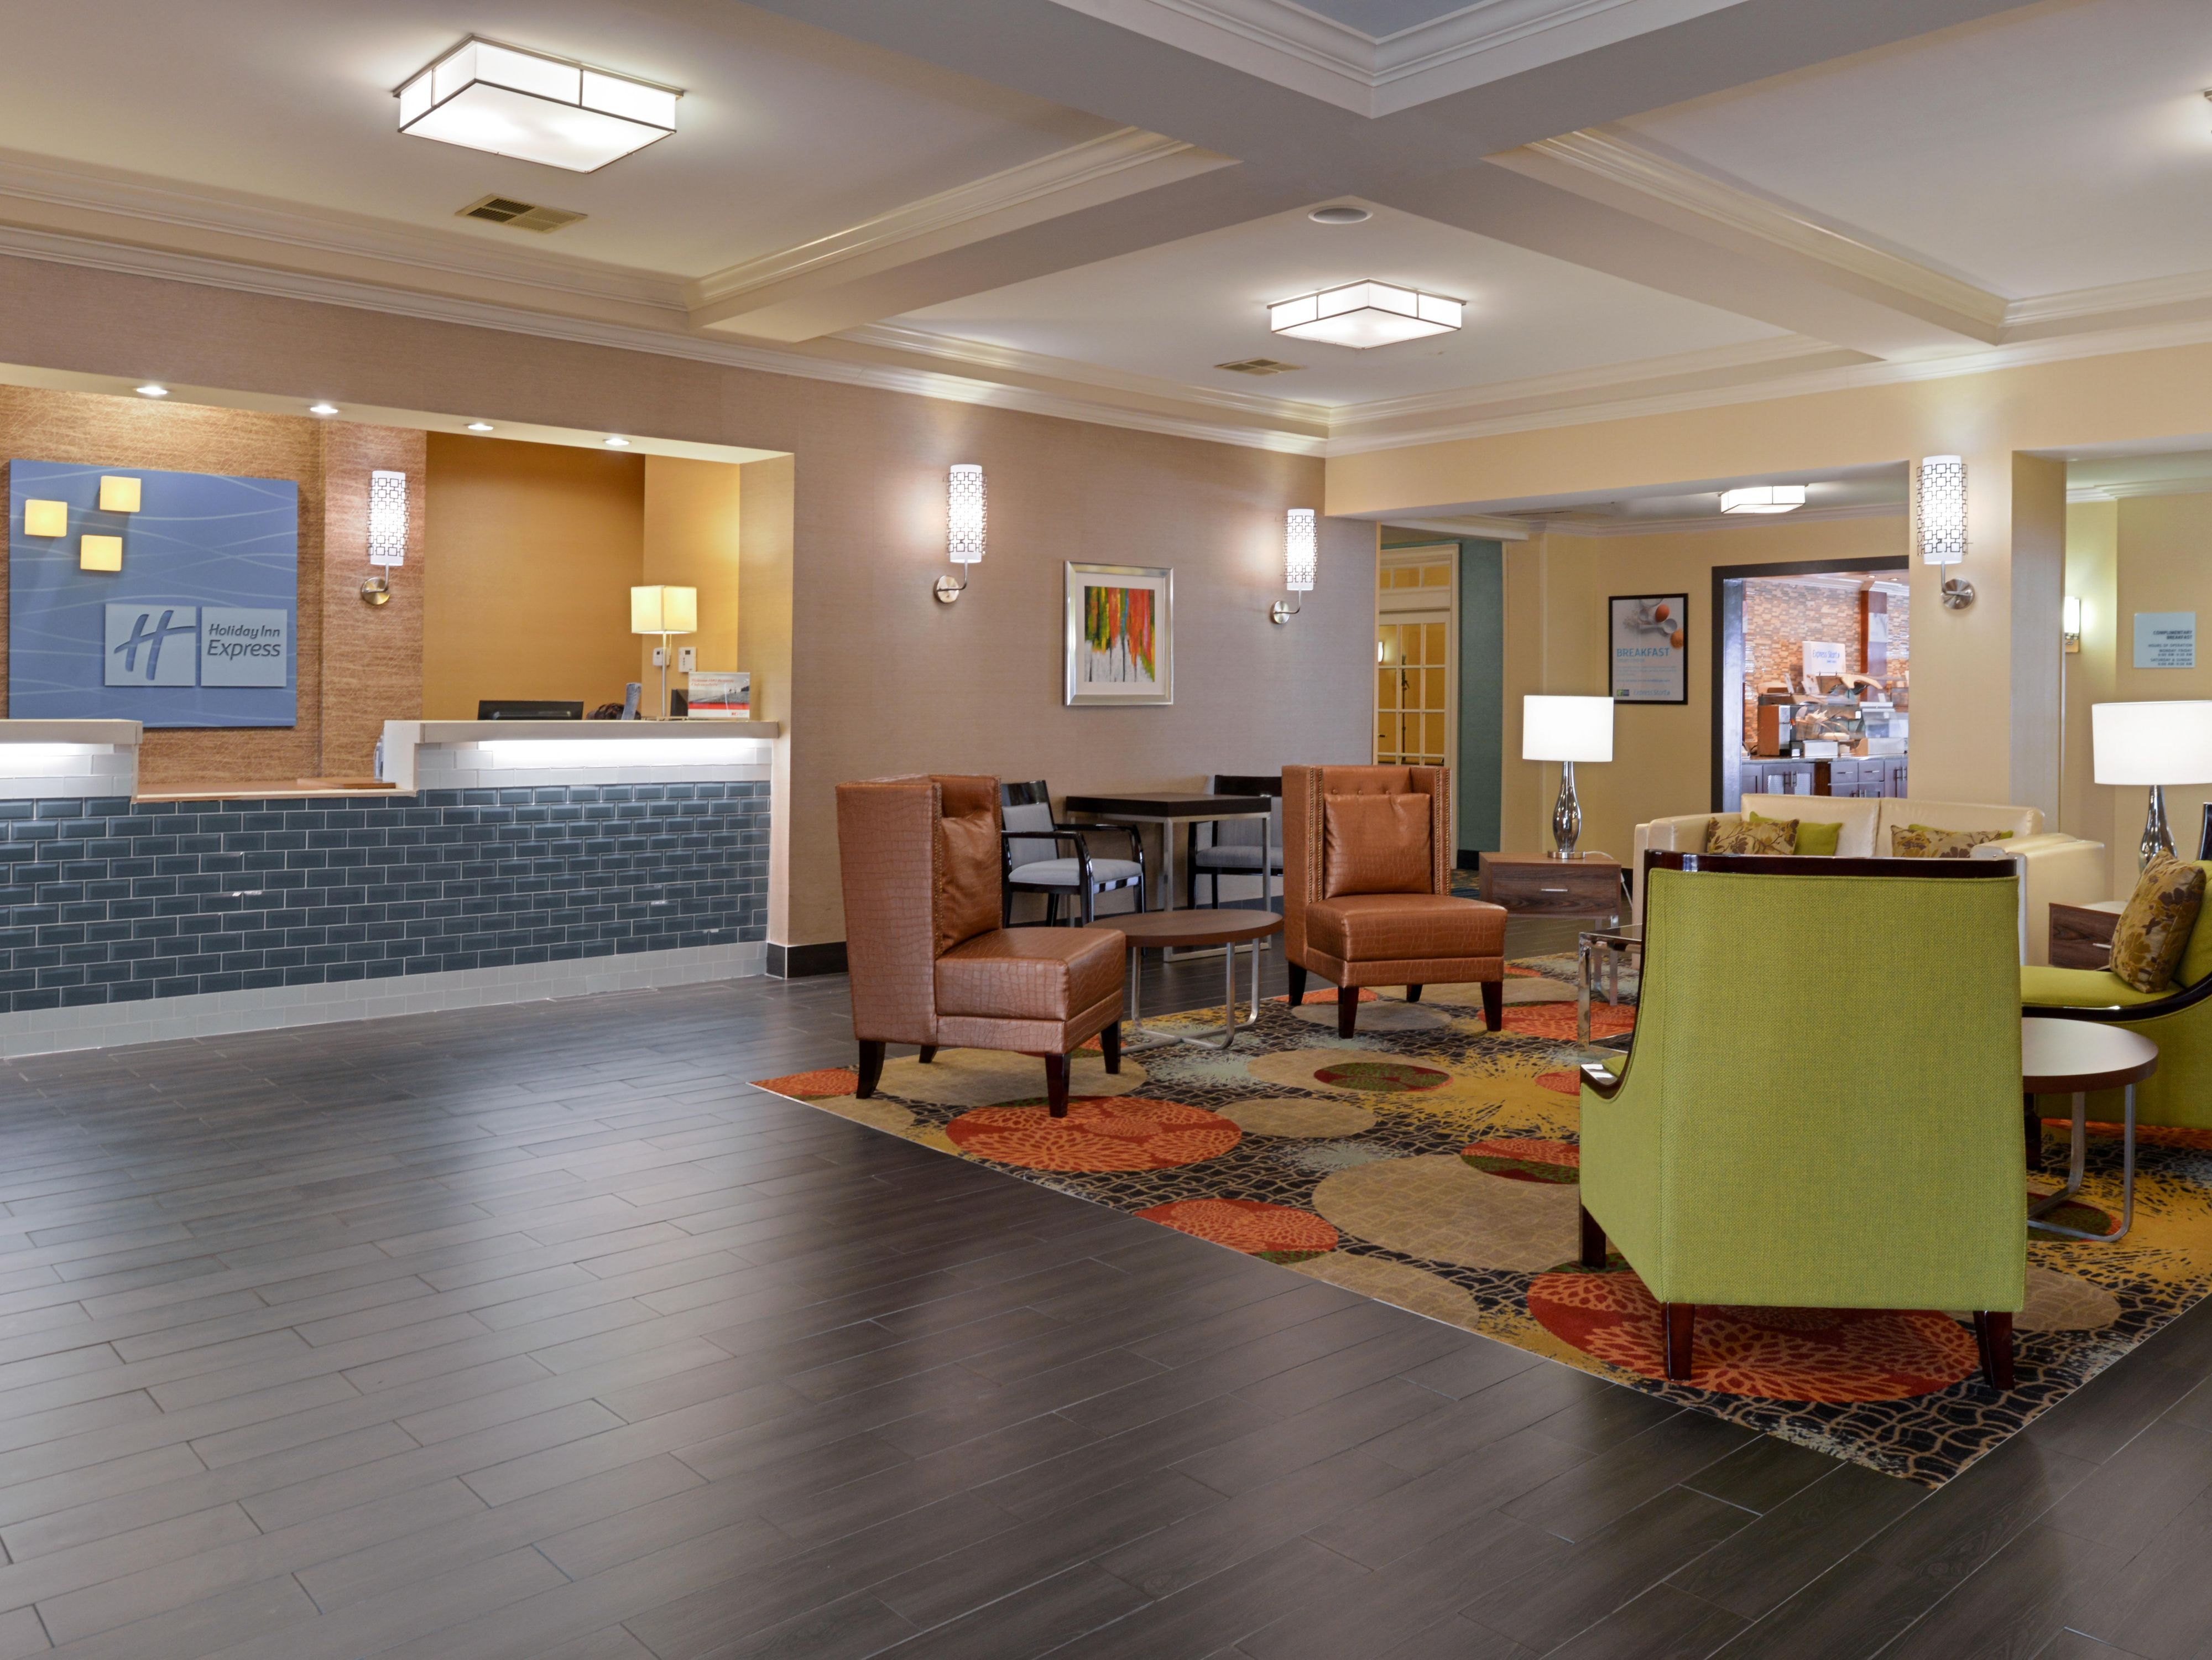 Holiday Inn Express & Suites Hotel Lobby. Simple Smart Travel